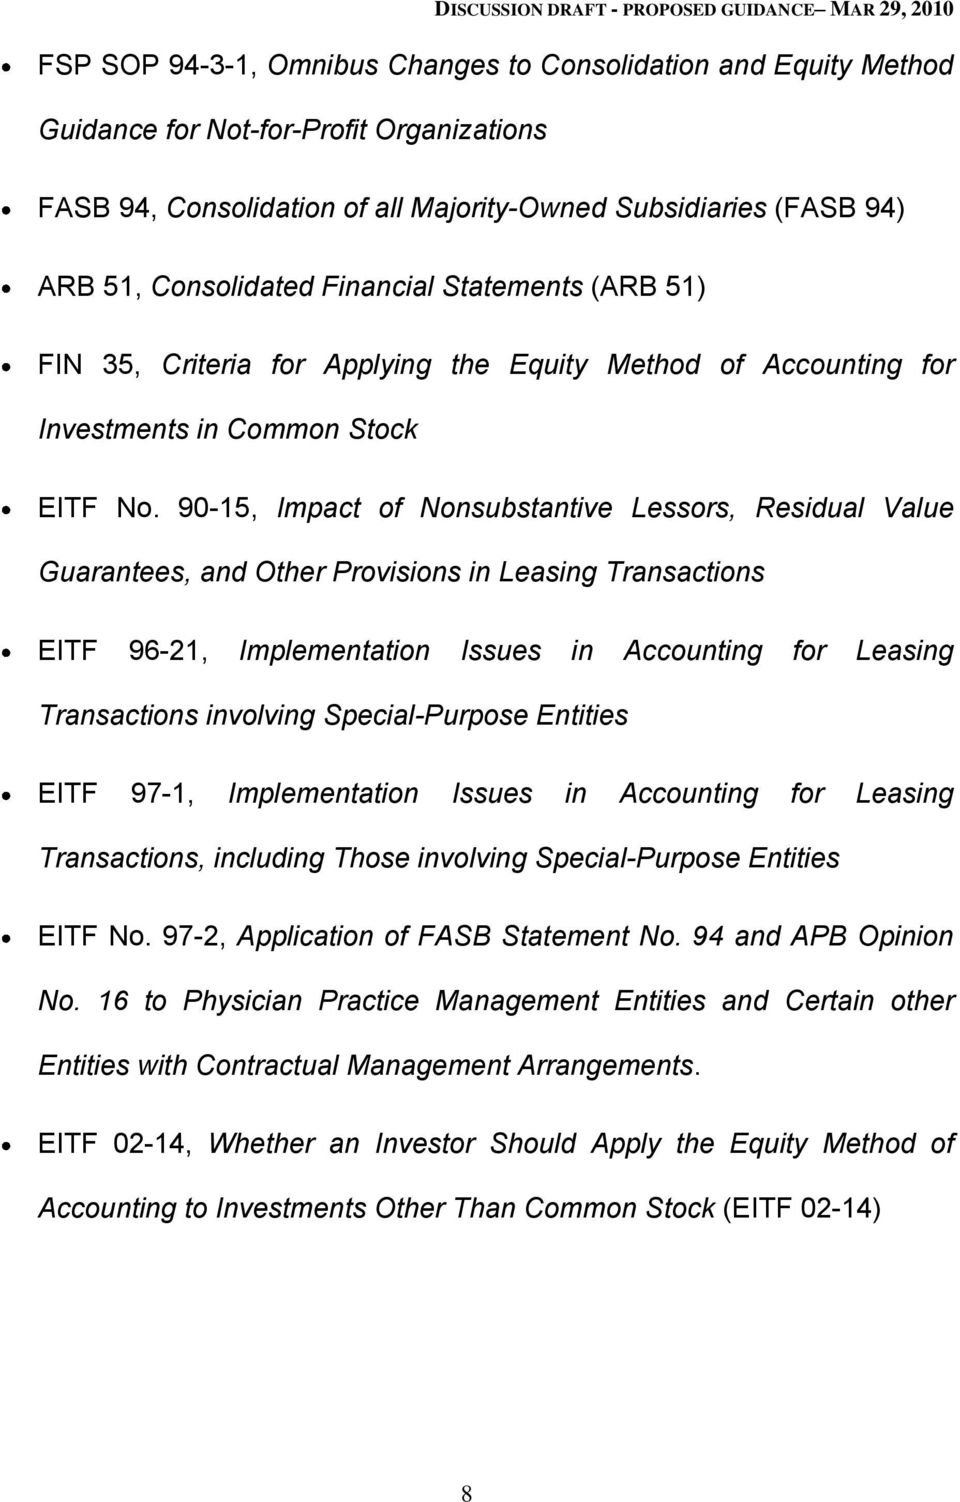 90-15, Impact of Nonsubstantive Lessors, Residual Value Guarantees, and Other Provisions in Leasing Transactions EITF 96-21, Implementation Issues in Accounting for Leasing Transactions involving